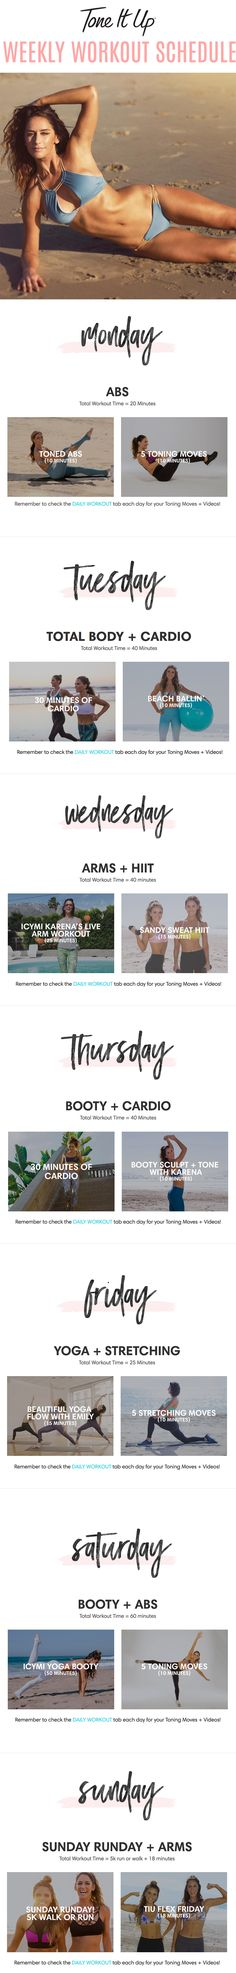 Tone It Up Weekly Workout Schedule! Summer Workout Schedule, Workout Challenge, Fitness Tips, Fitness Motivation, Health Fitness, Sweat It Out, Belly Fat Workout, Toning Workouts, Tone It Up